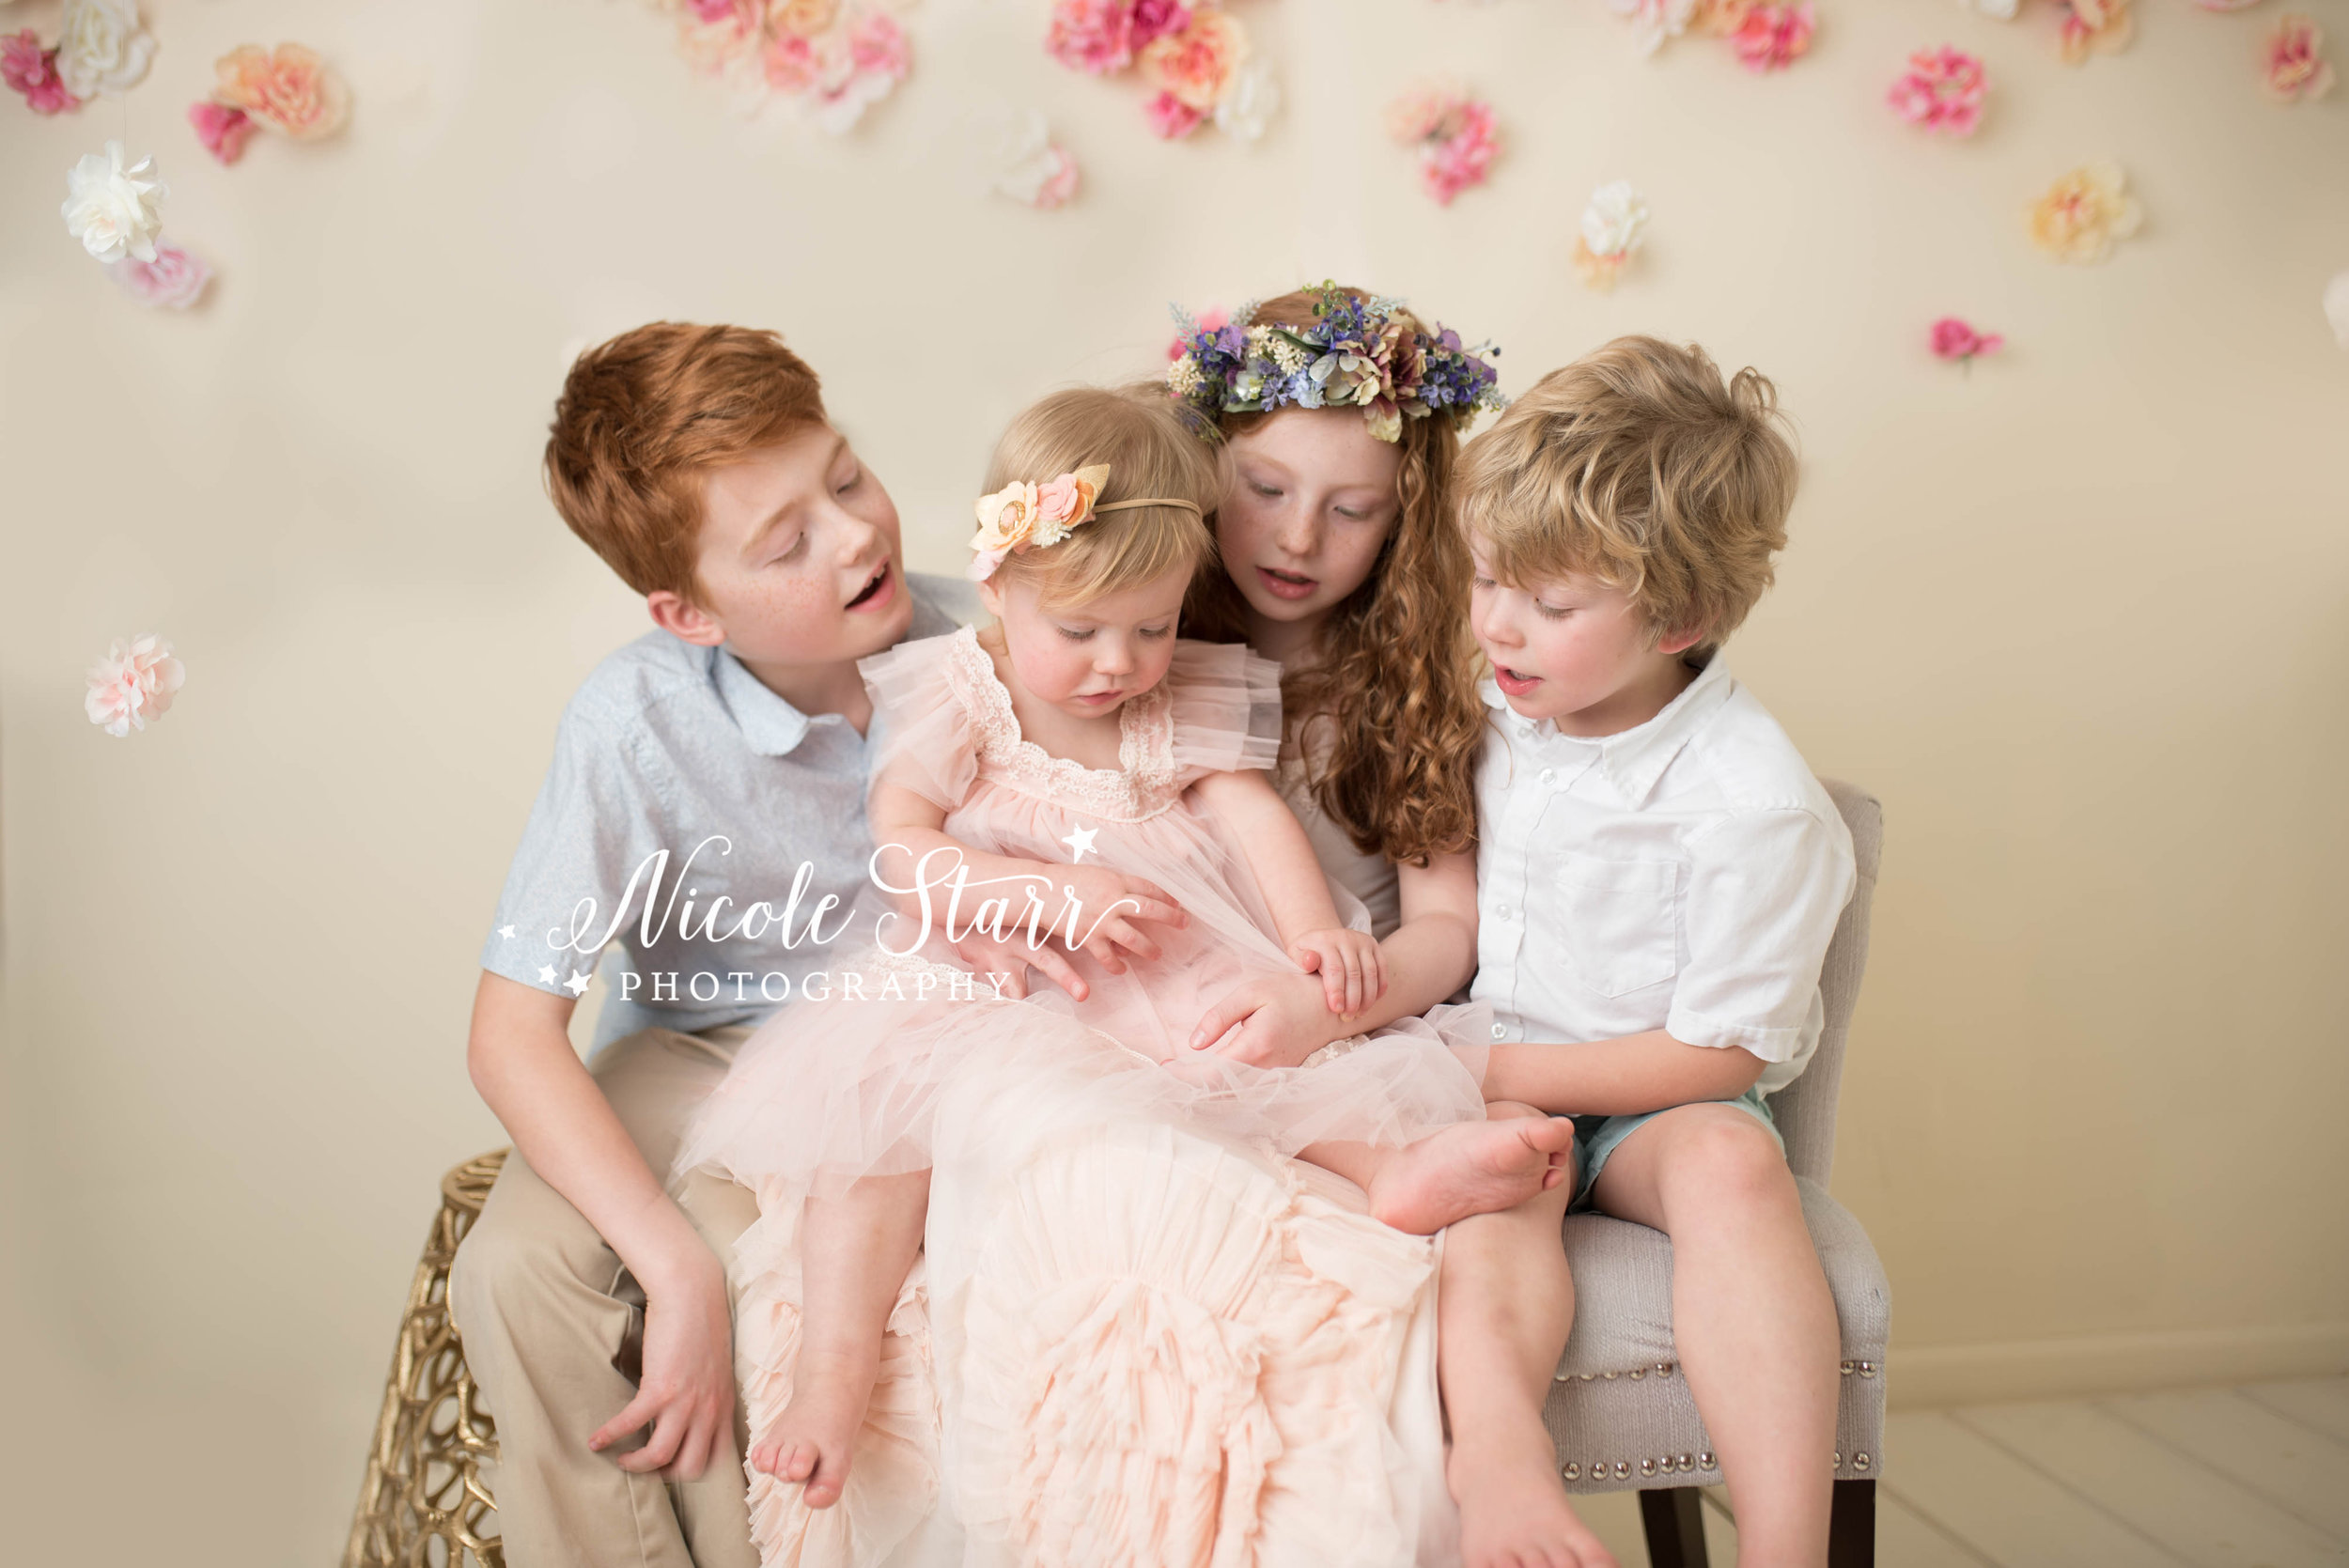 Nicole Starr Photography | Saratoga Springs NY Family Photographer | Boston MA Family Photographer | Motherhood Photographer | Promotional